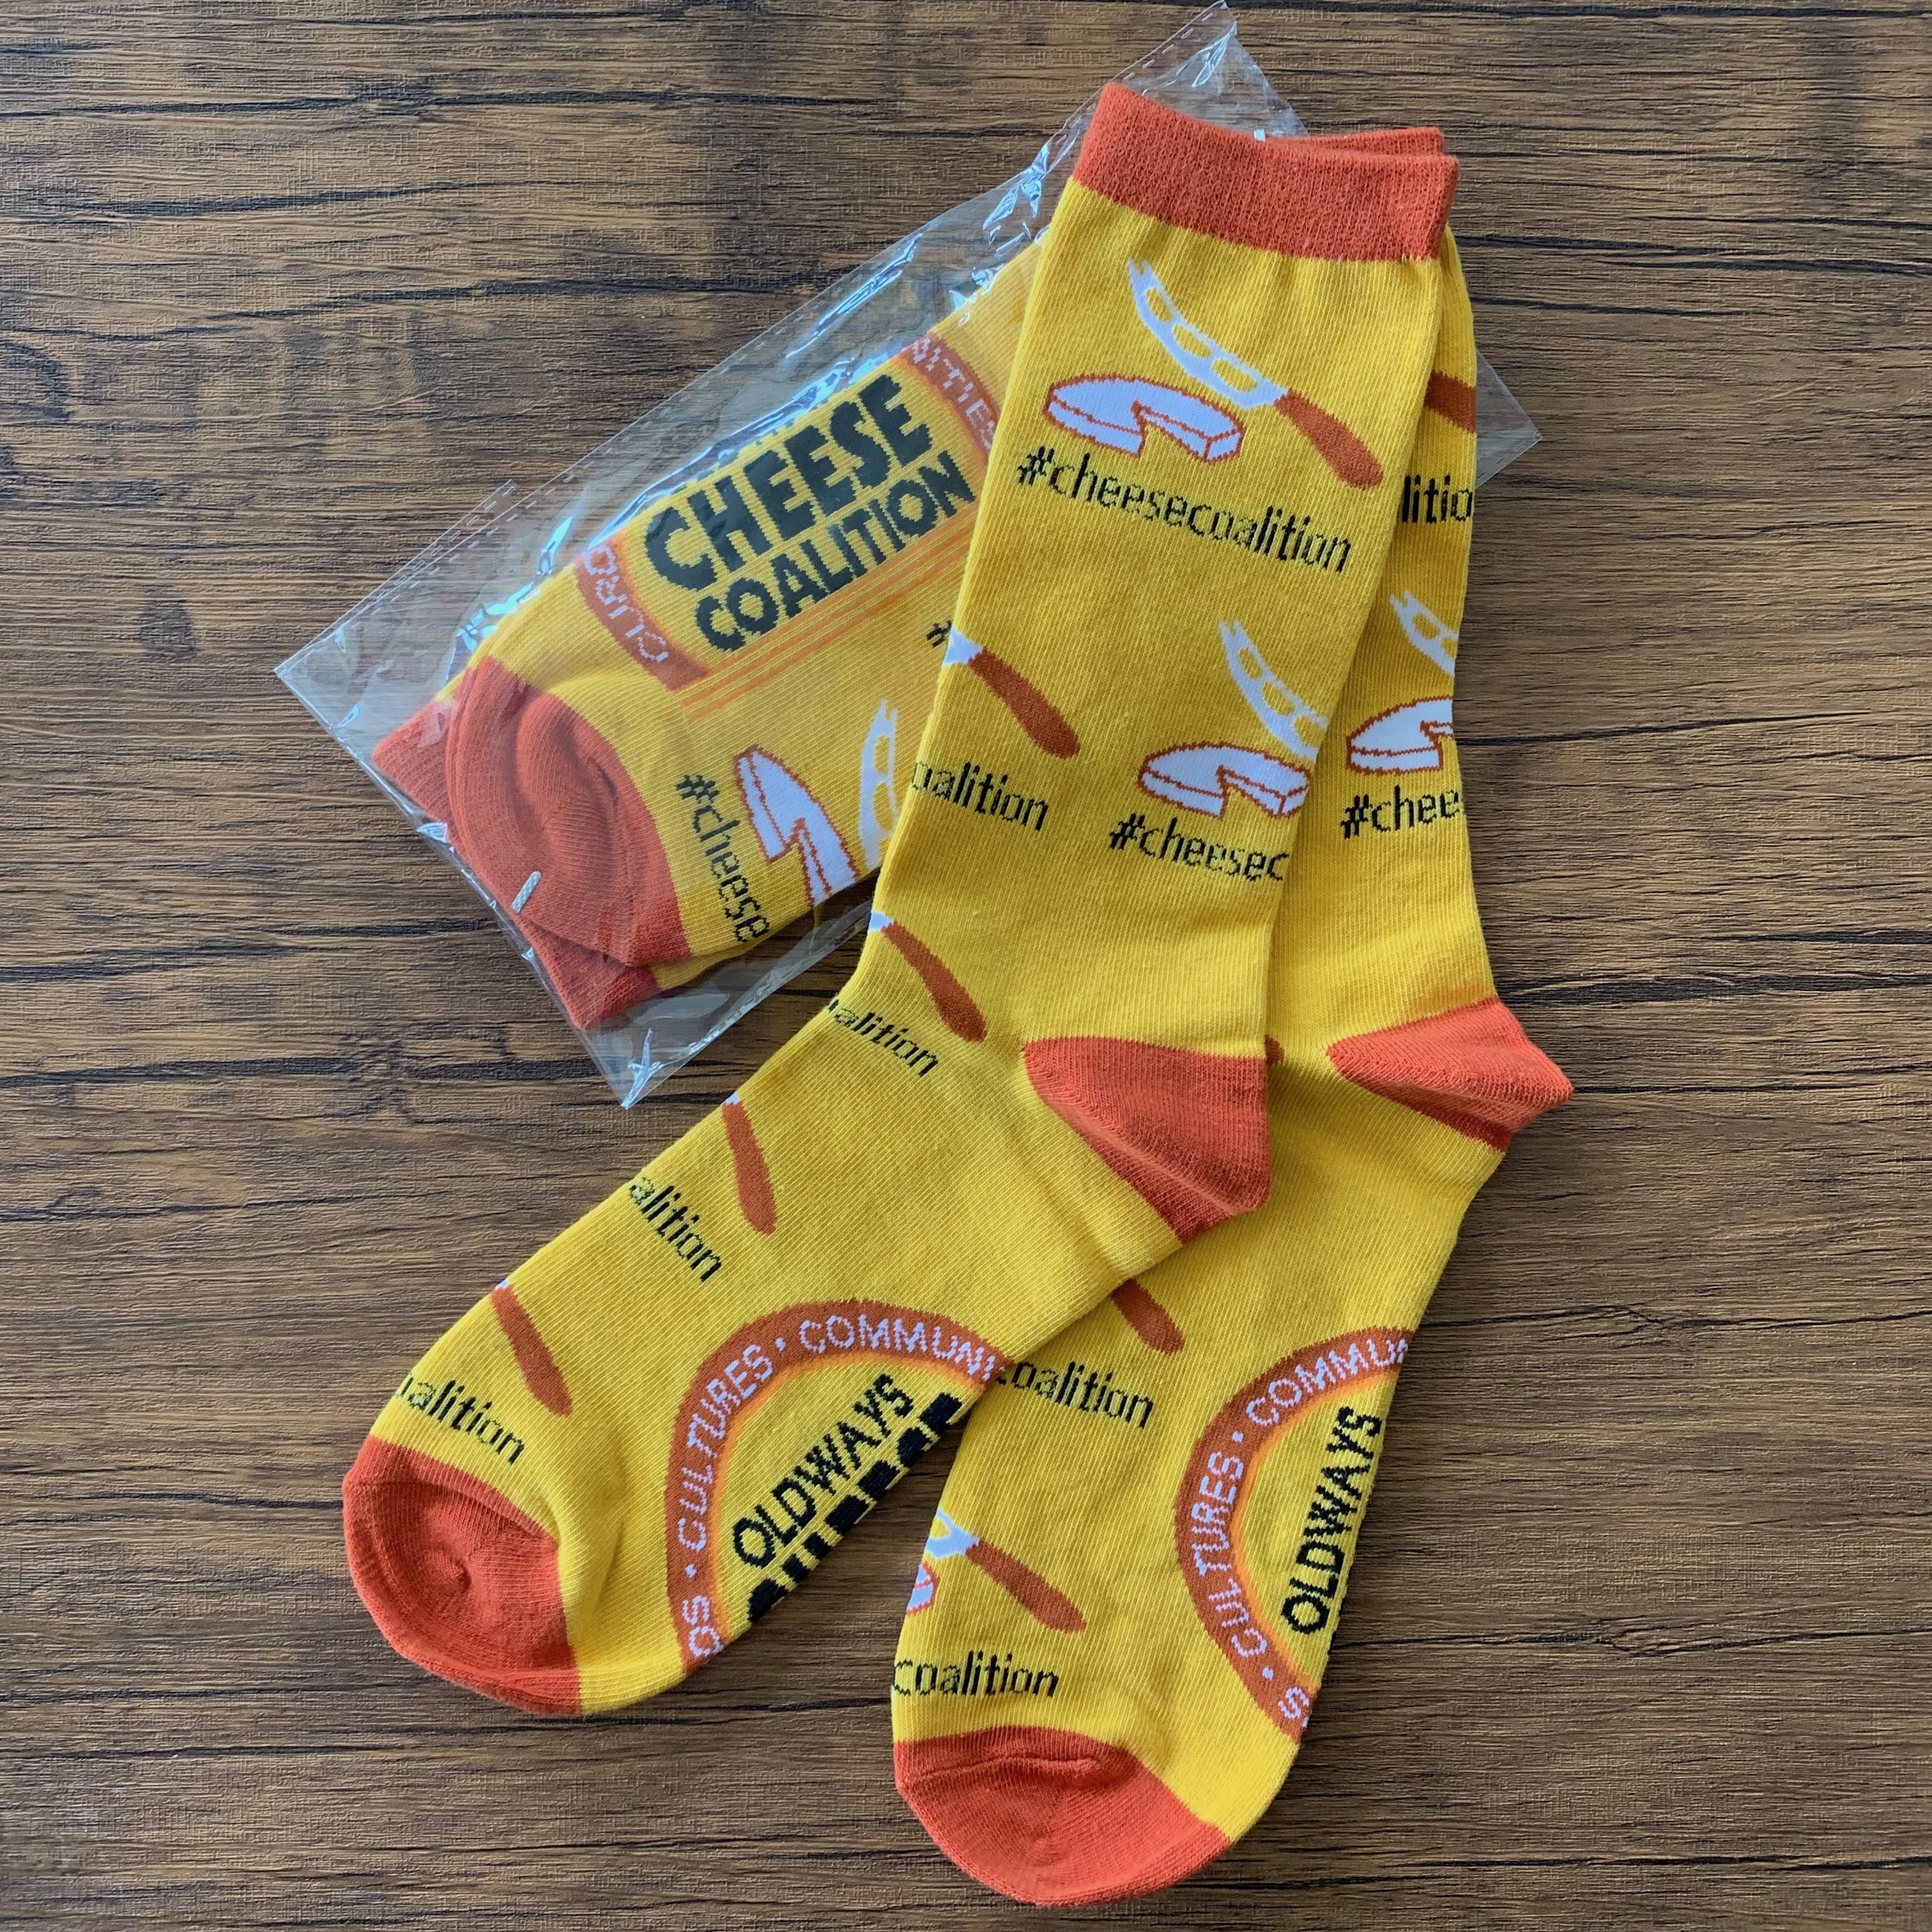 OCC Cheese Socks.jpg